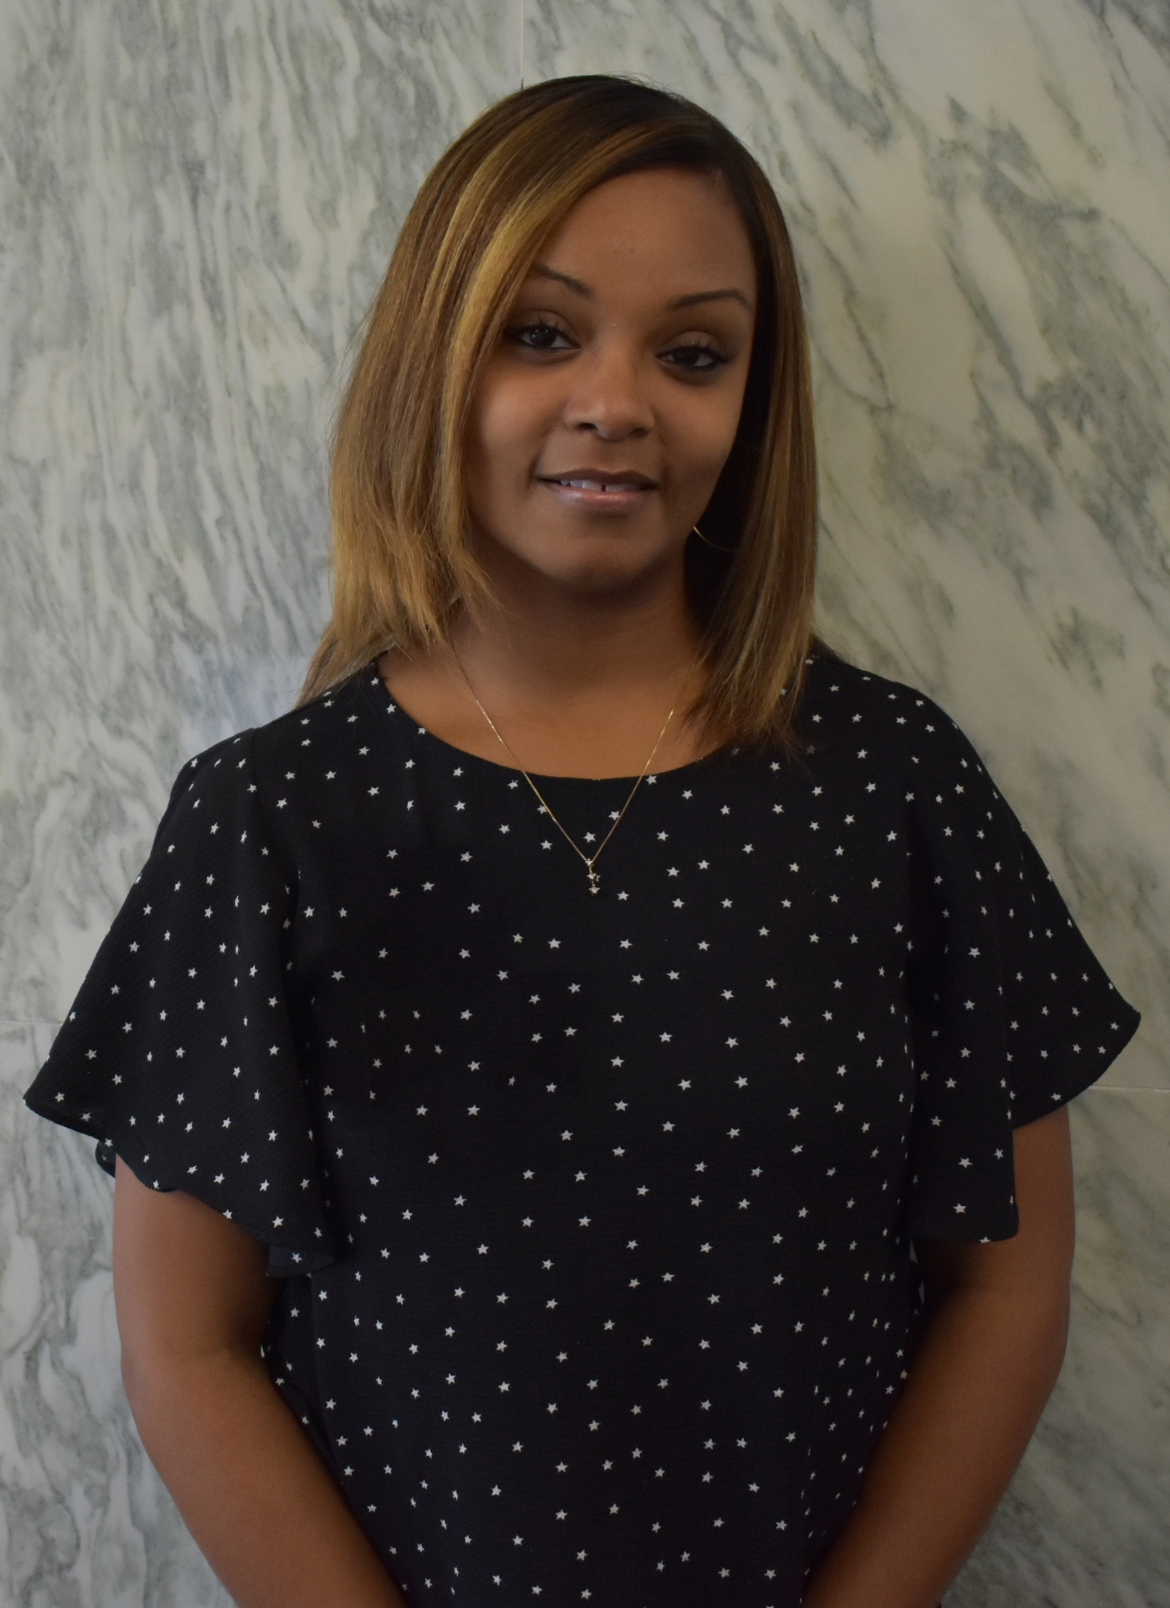 Talbert House names Tiffany Thomas as Director of Regional Community Corrections